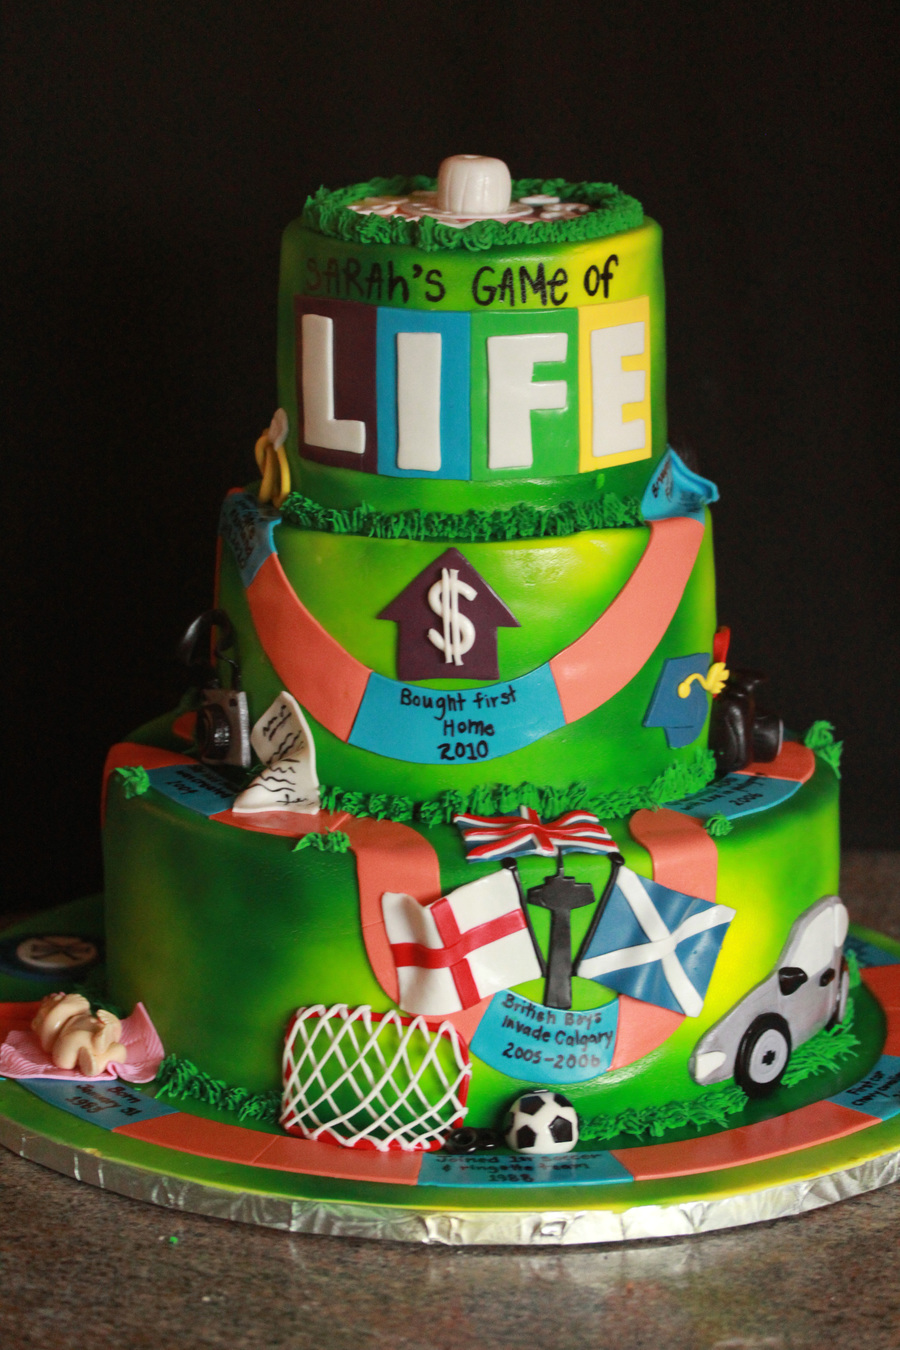 History Of Cake Decorating Timeline : A Friend Of Mine Requested A Timeline Cake For Her 30Th ...